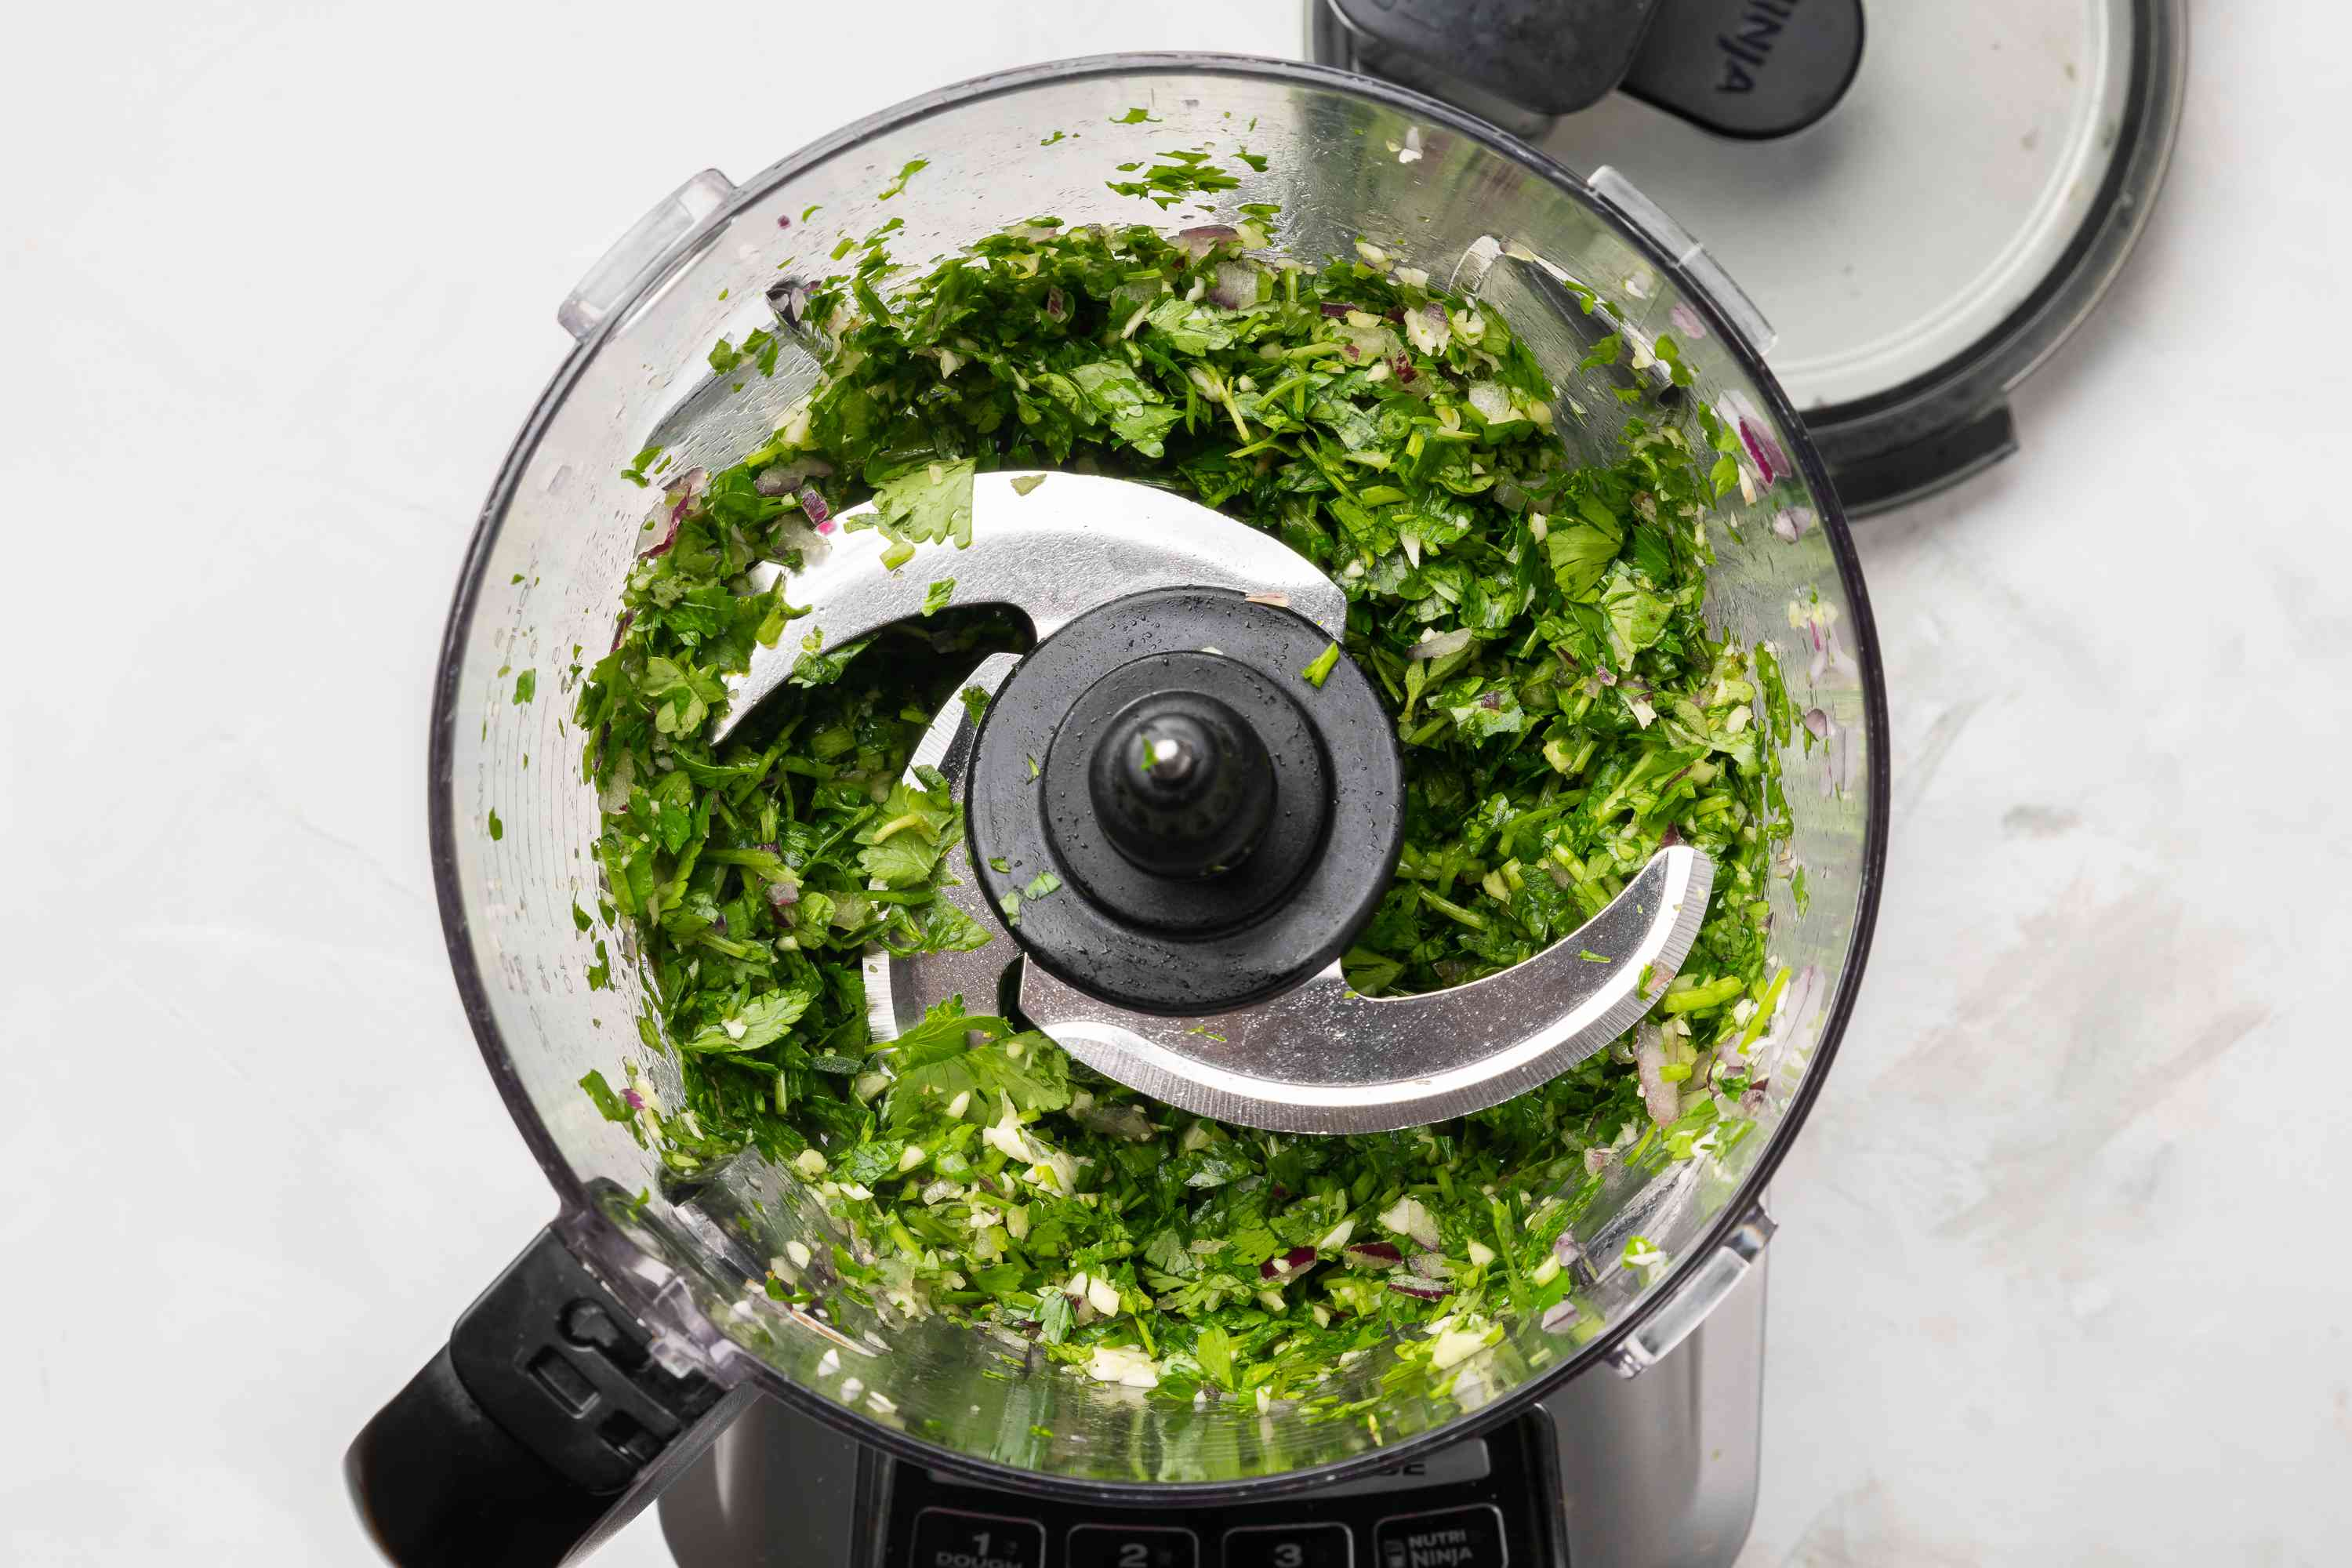 Add the parsley, oregano, and cilantro to the onions and garlic in the food processor